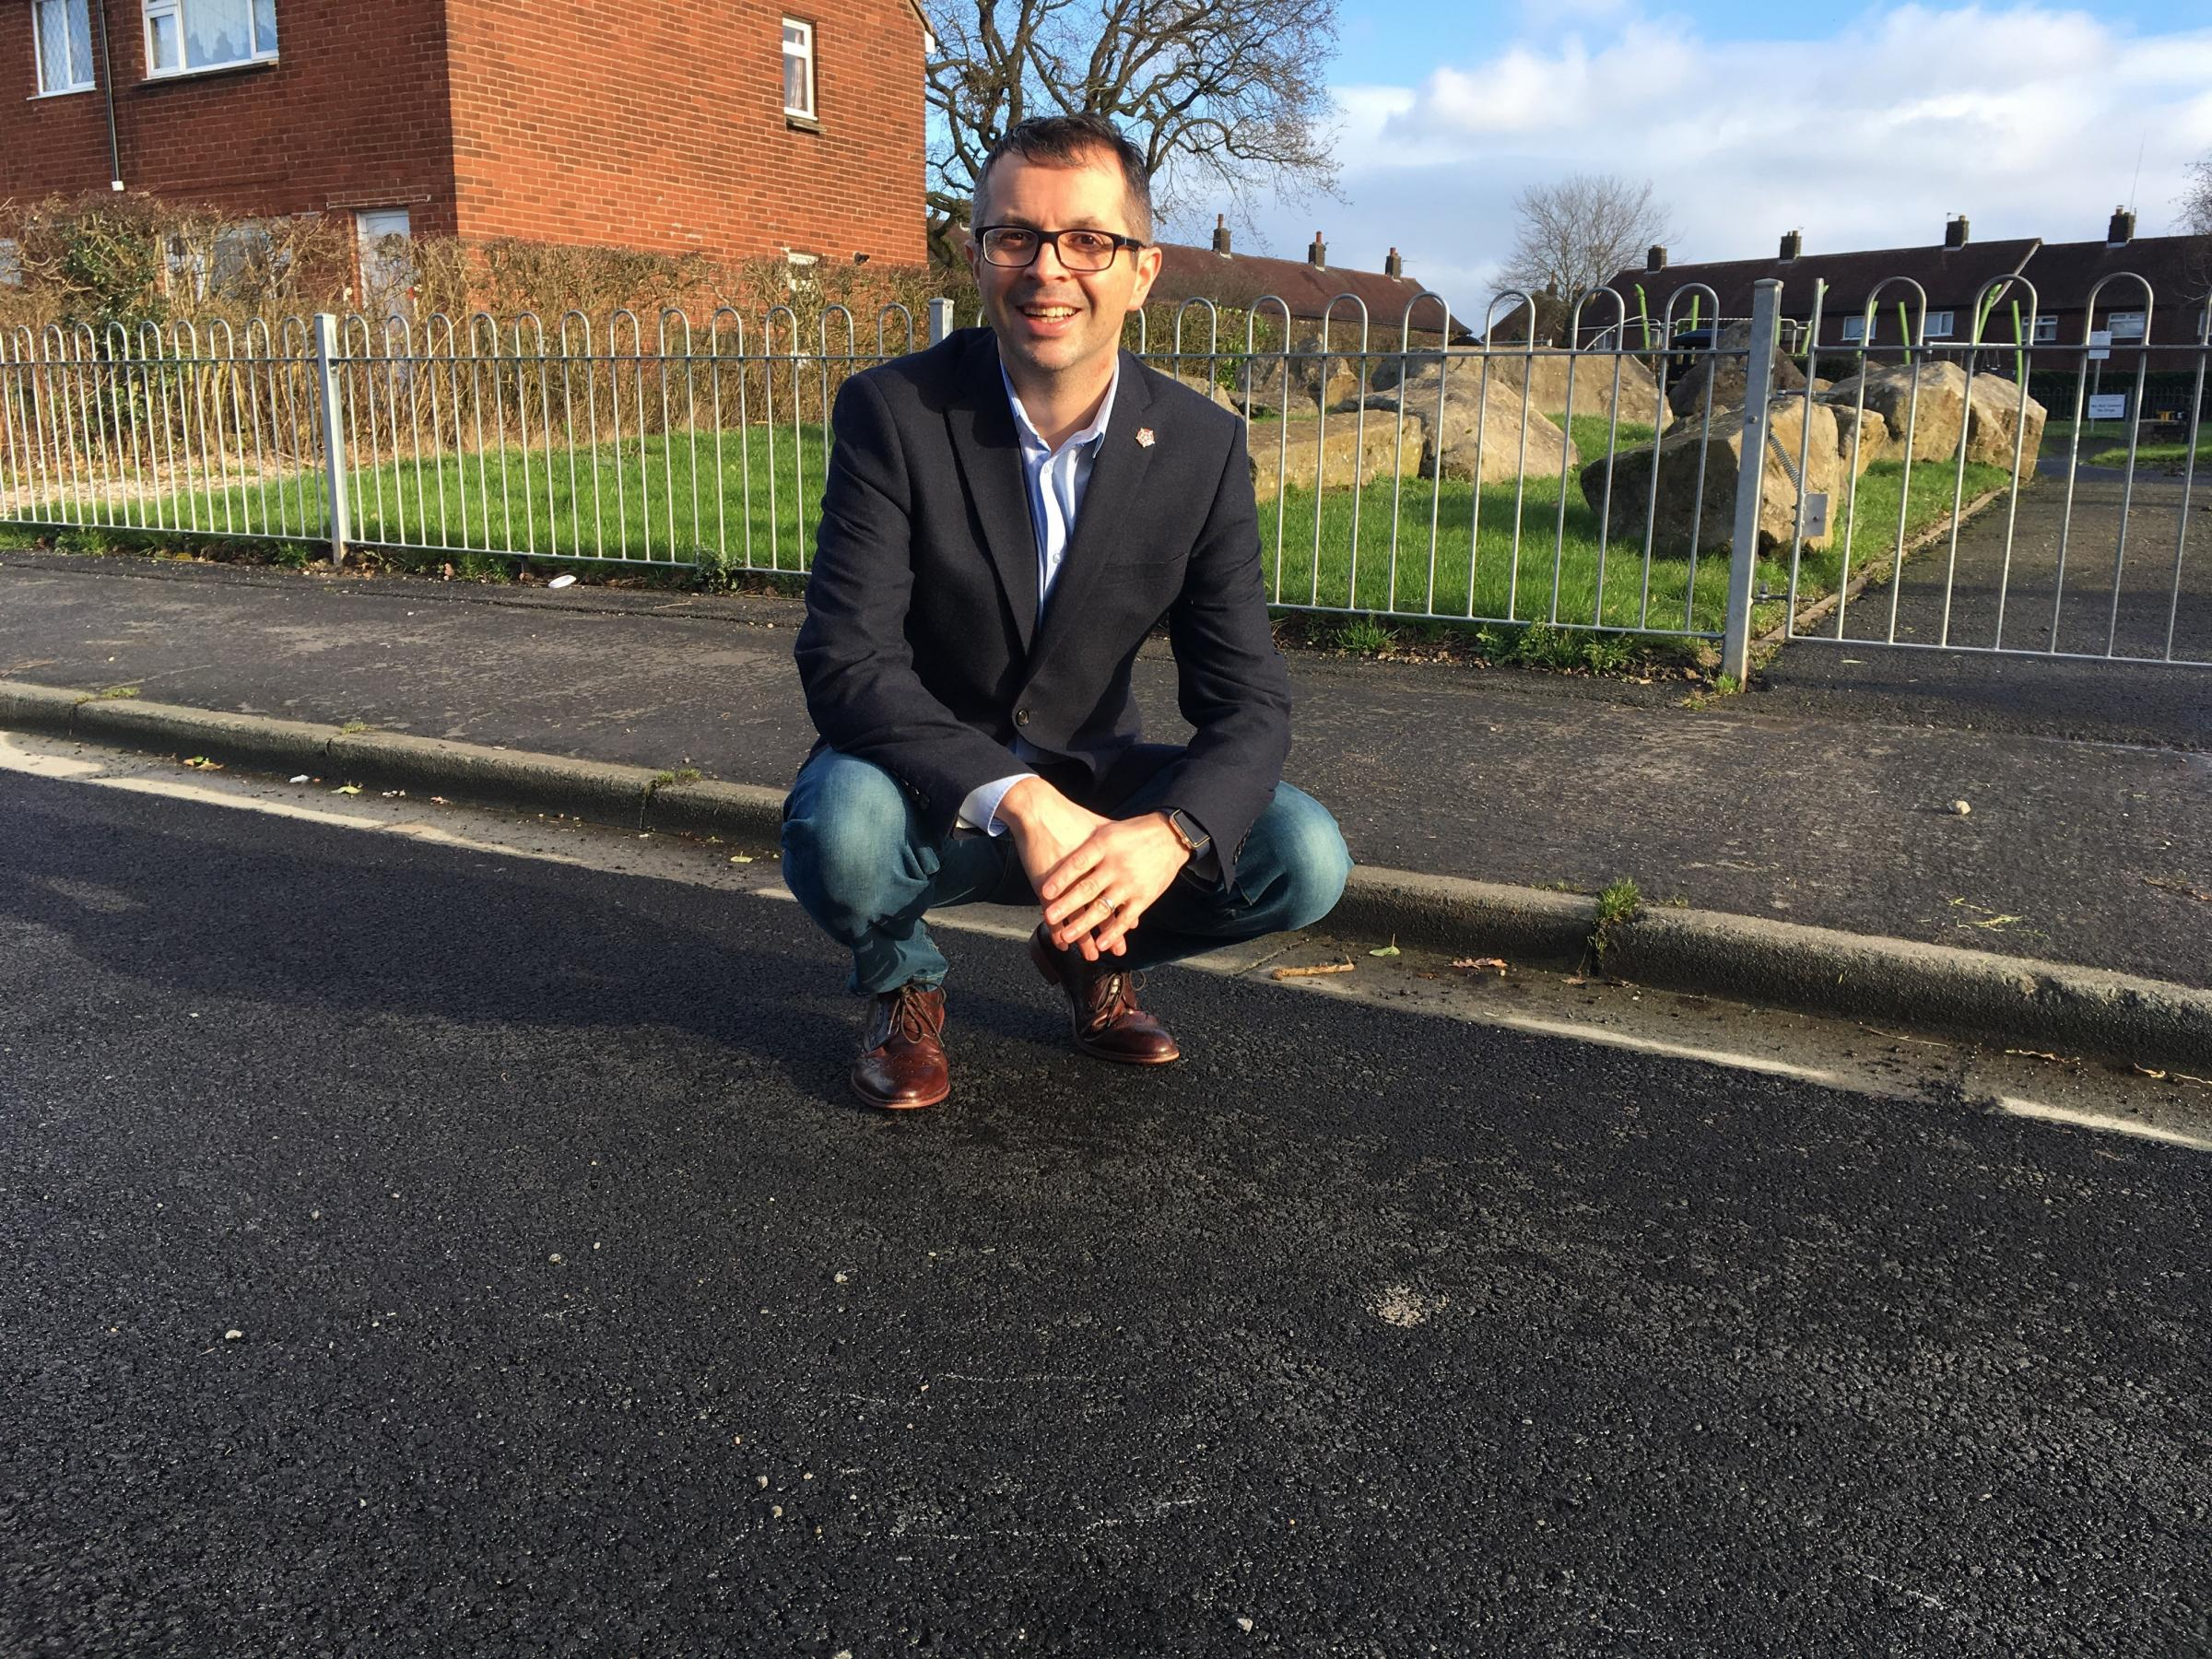 Cllr Aidy Riggott on Greenside with the new road improvements